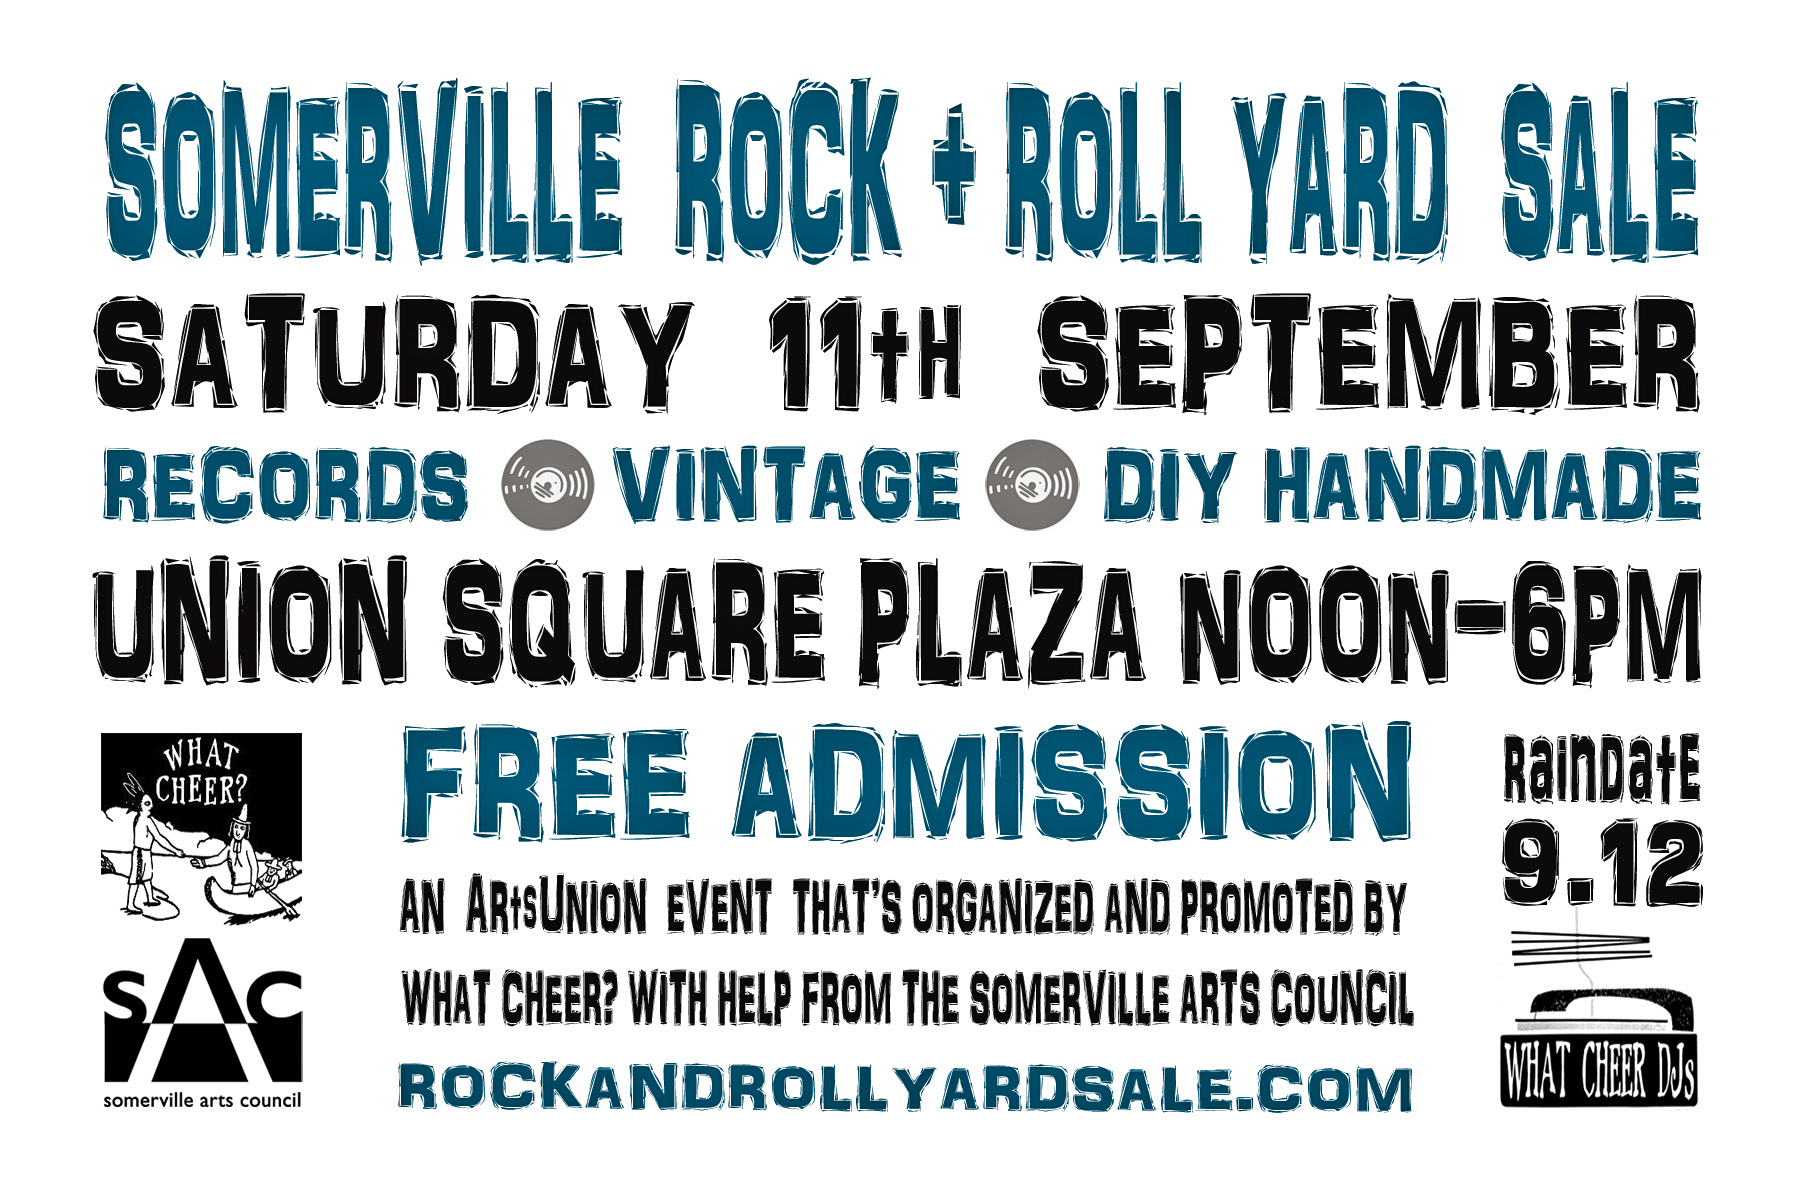 the somerville rock and roll yard sale returns to union square plaza on saturday 11 september 2021 free admission Noon to 6pm